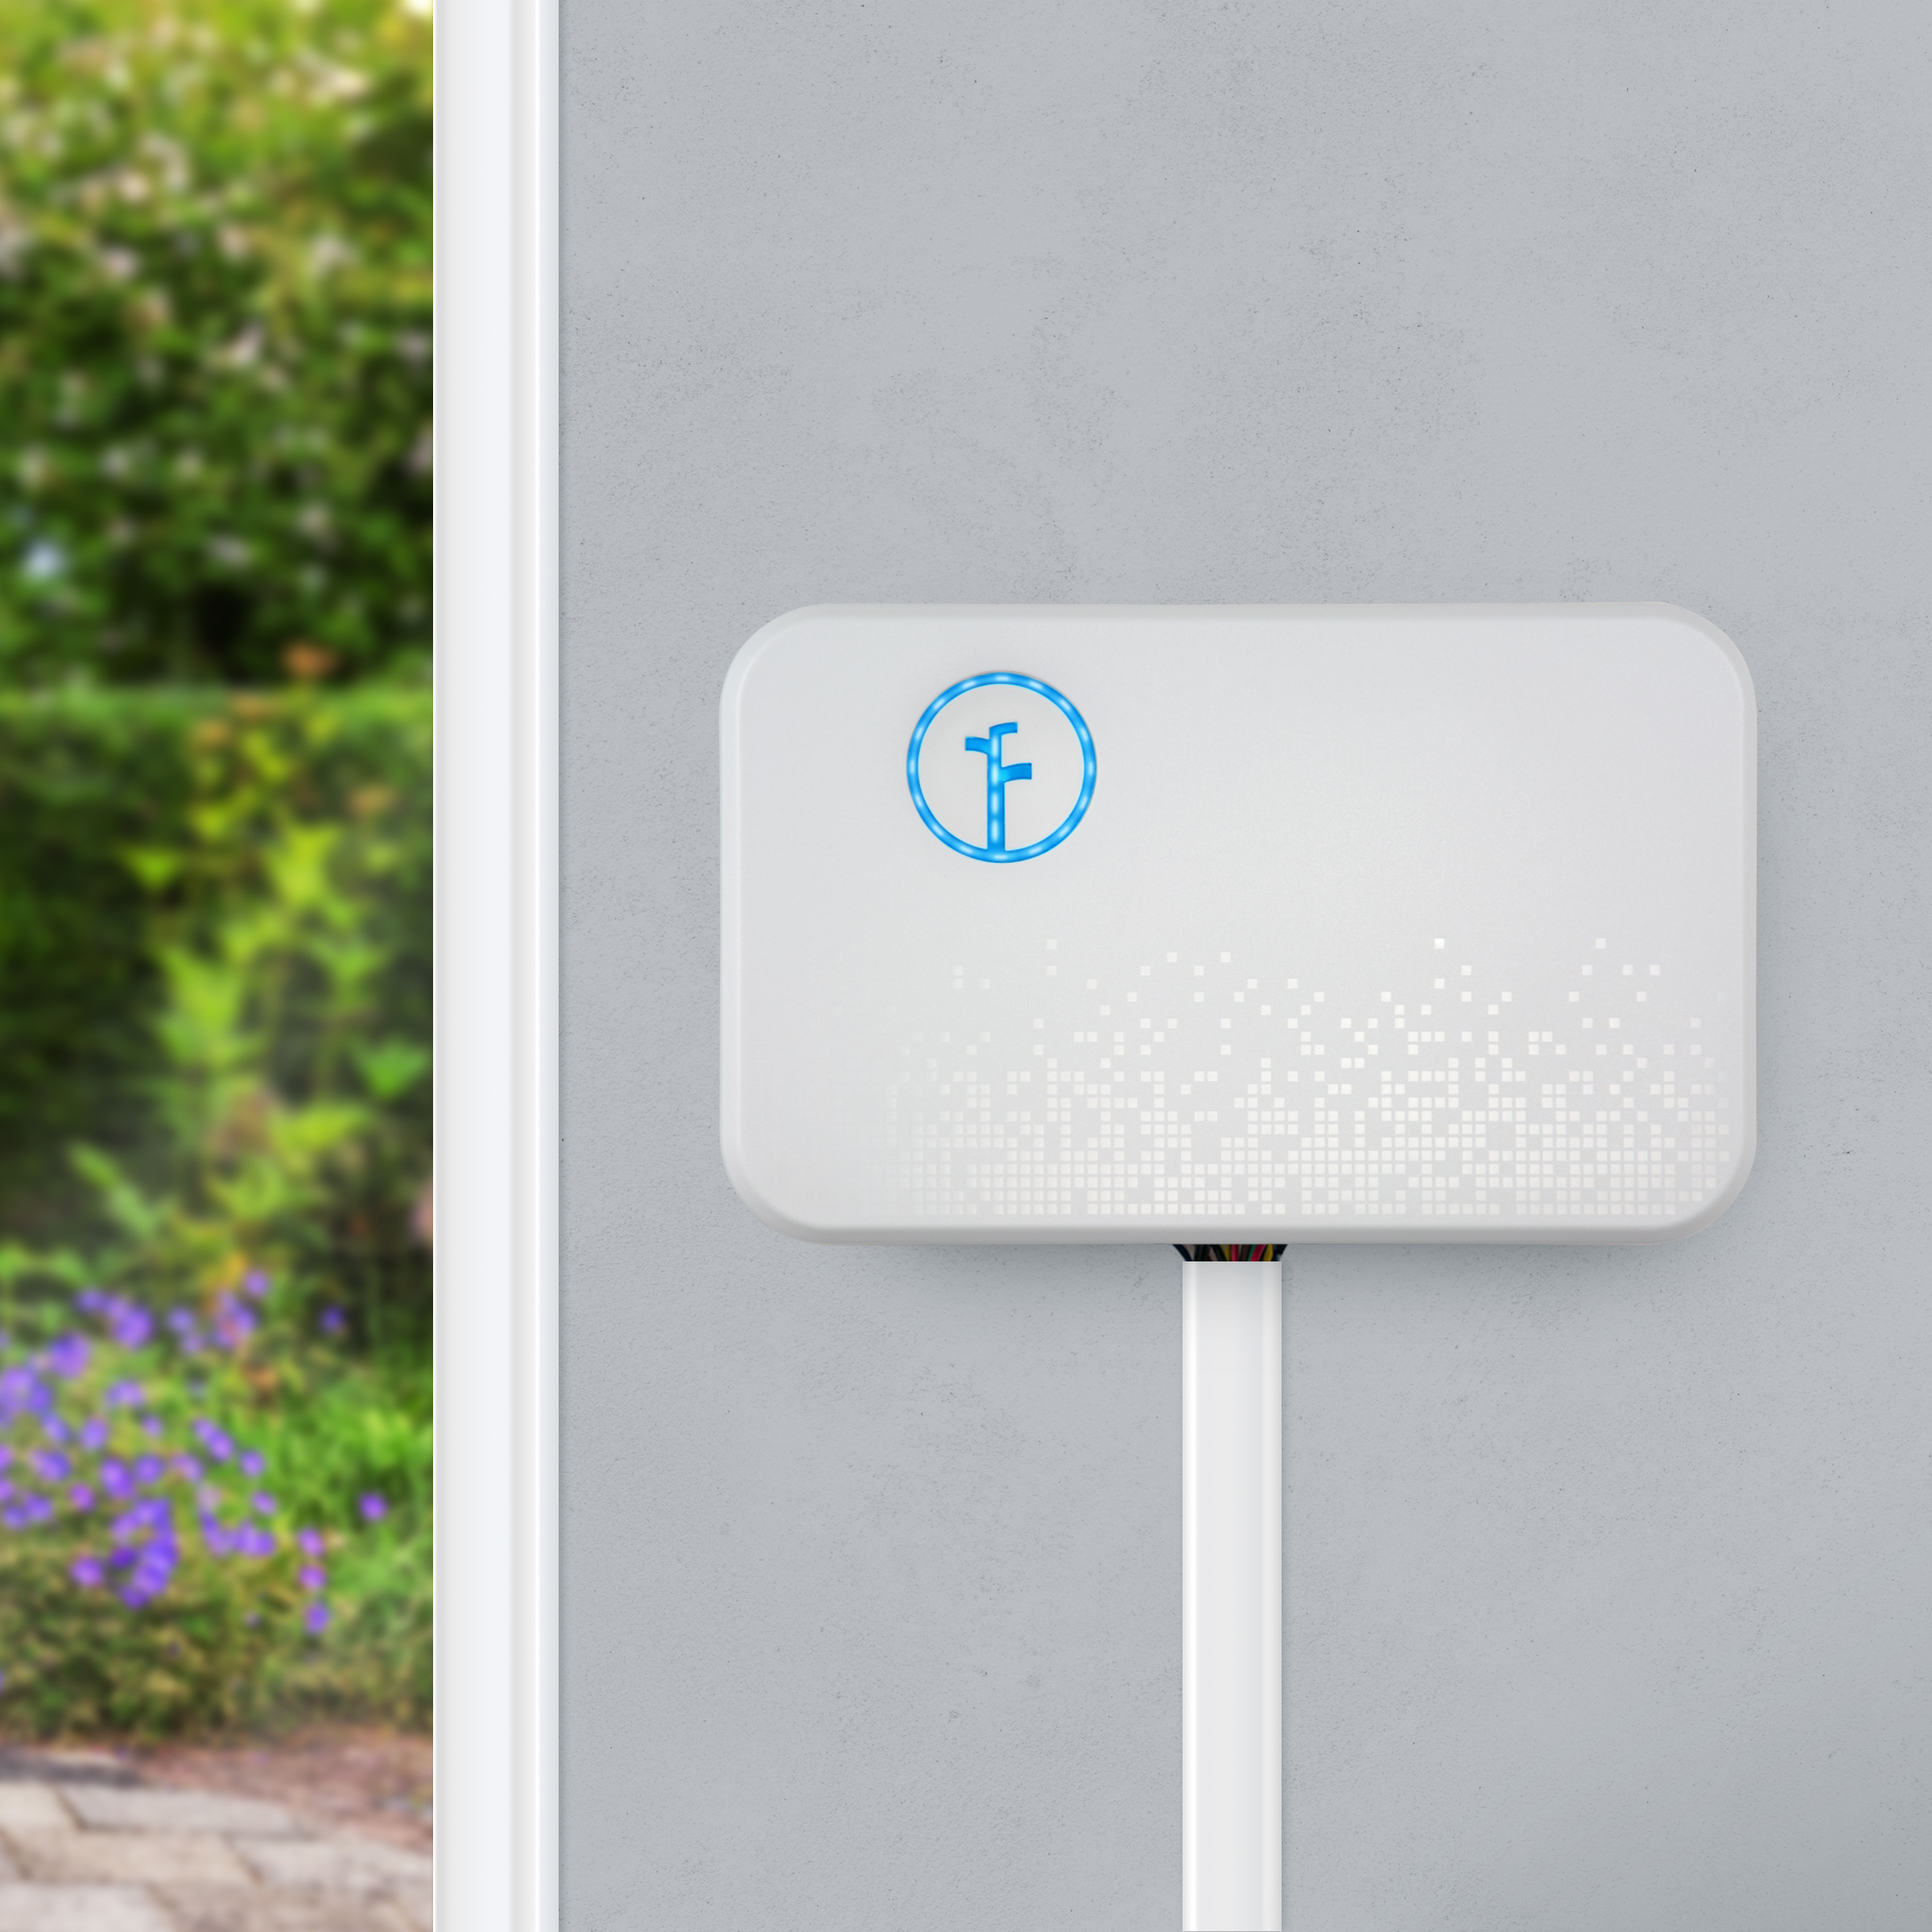 copy-of-rachio-sprinkler-controller-gen-2-installed-2.jpg